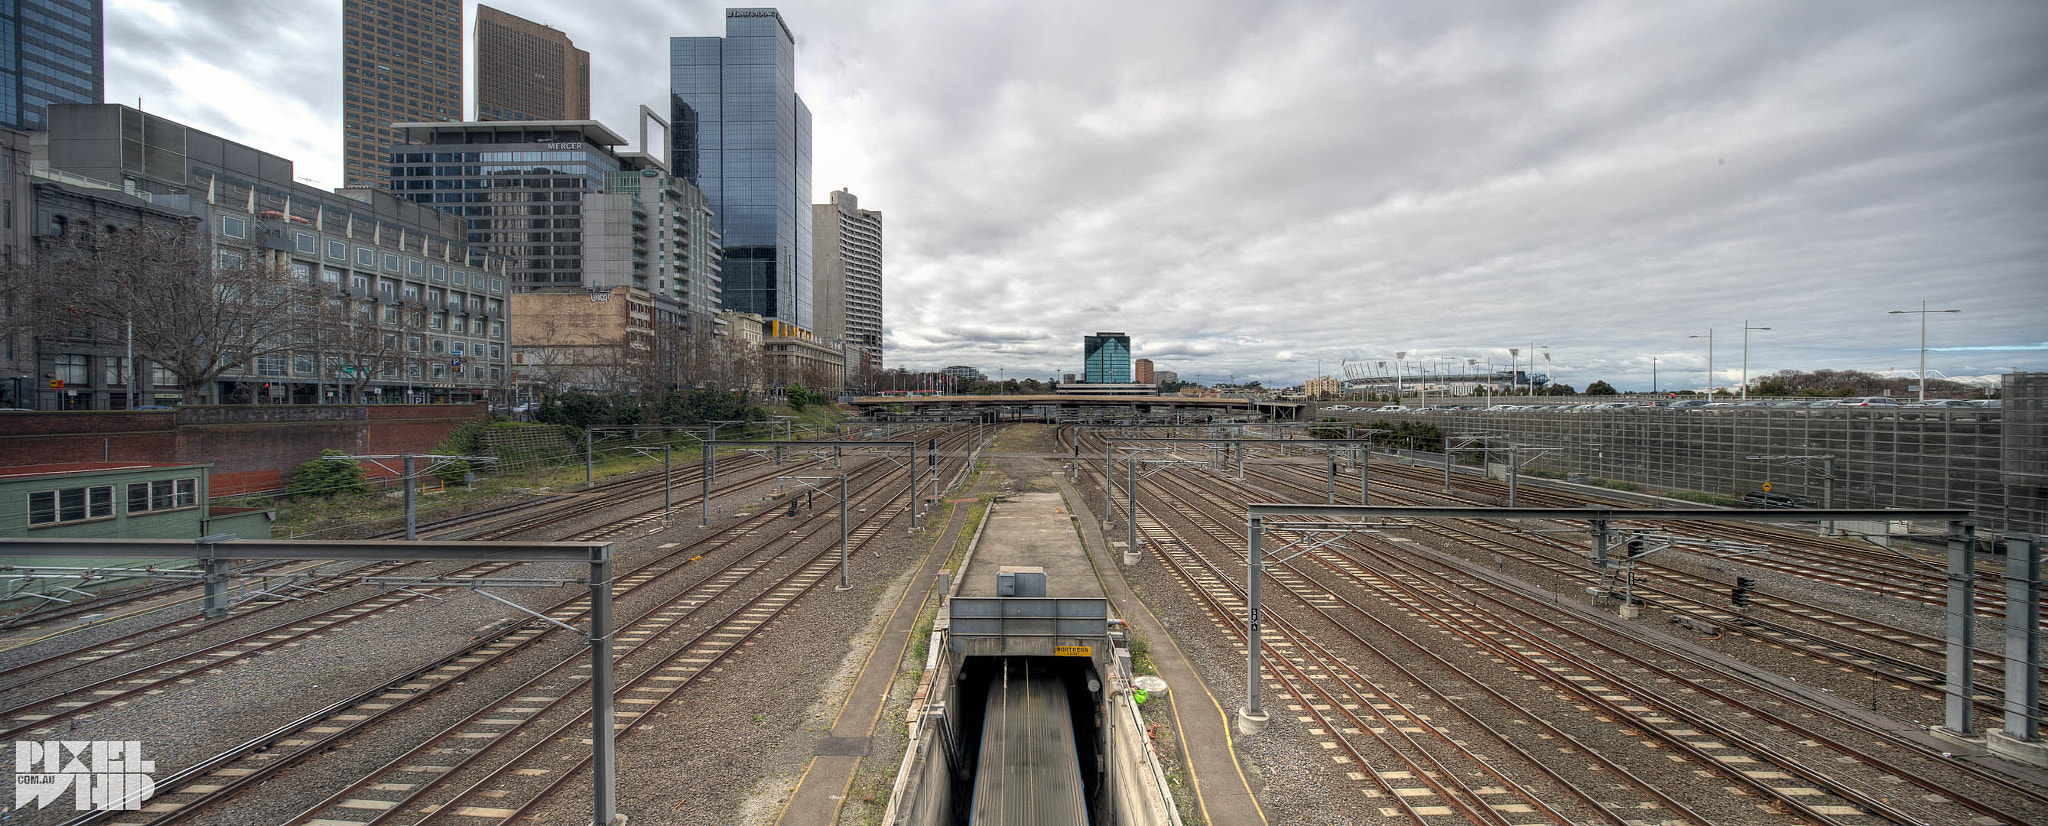 Photograph Melbourne Rail HDR Panorama by mark burban on 500px